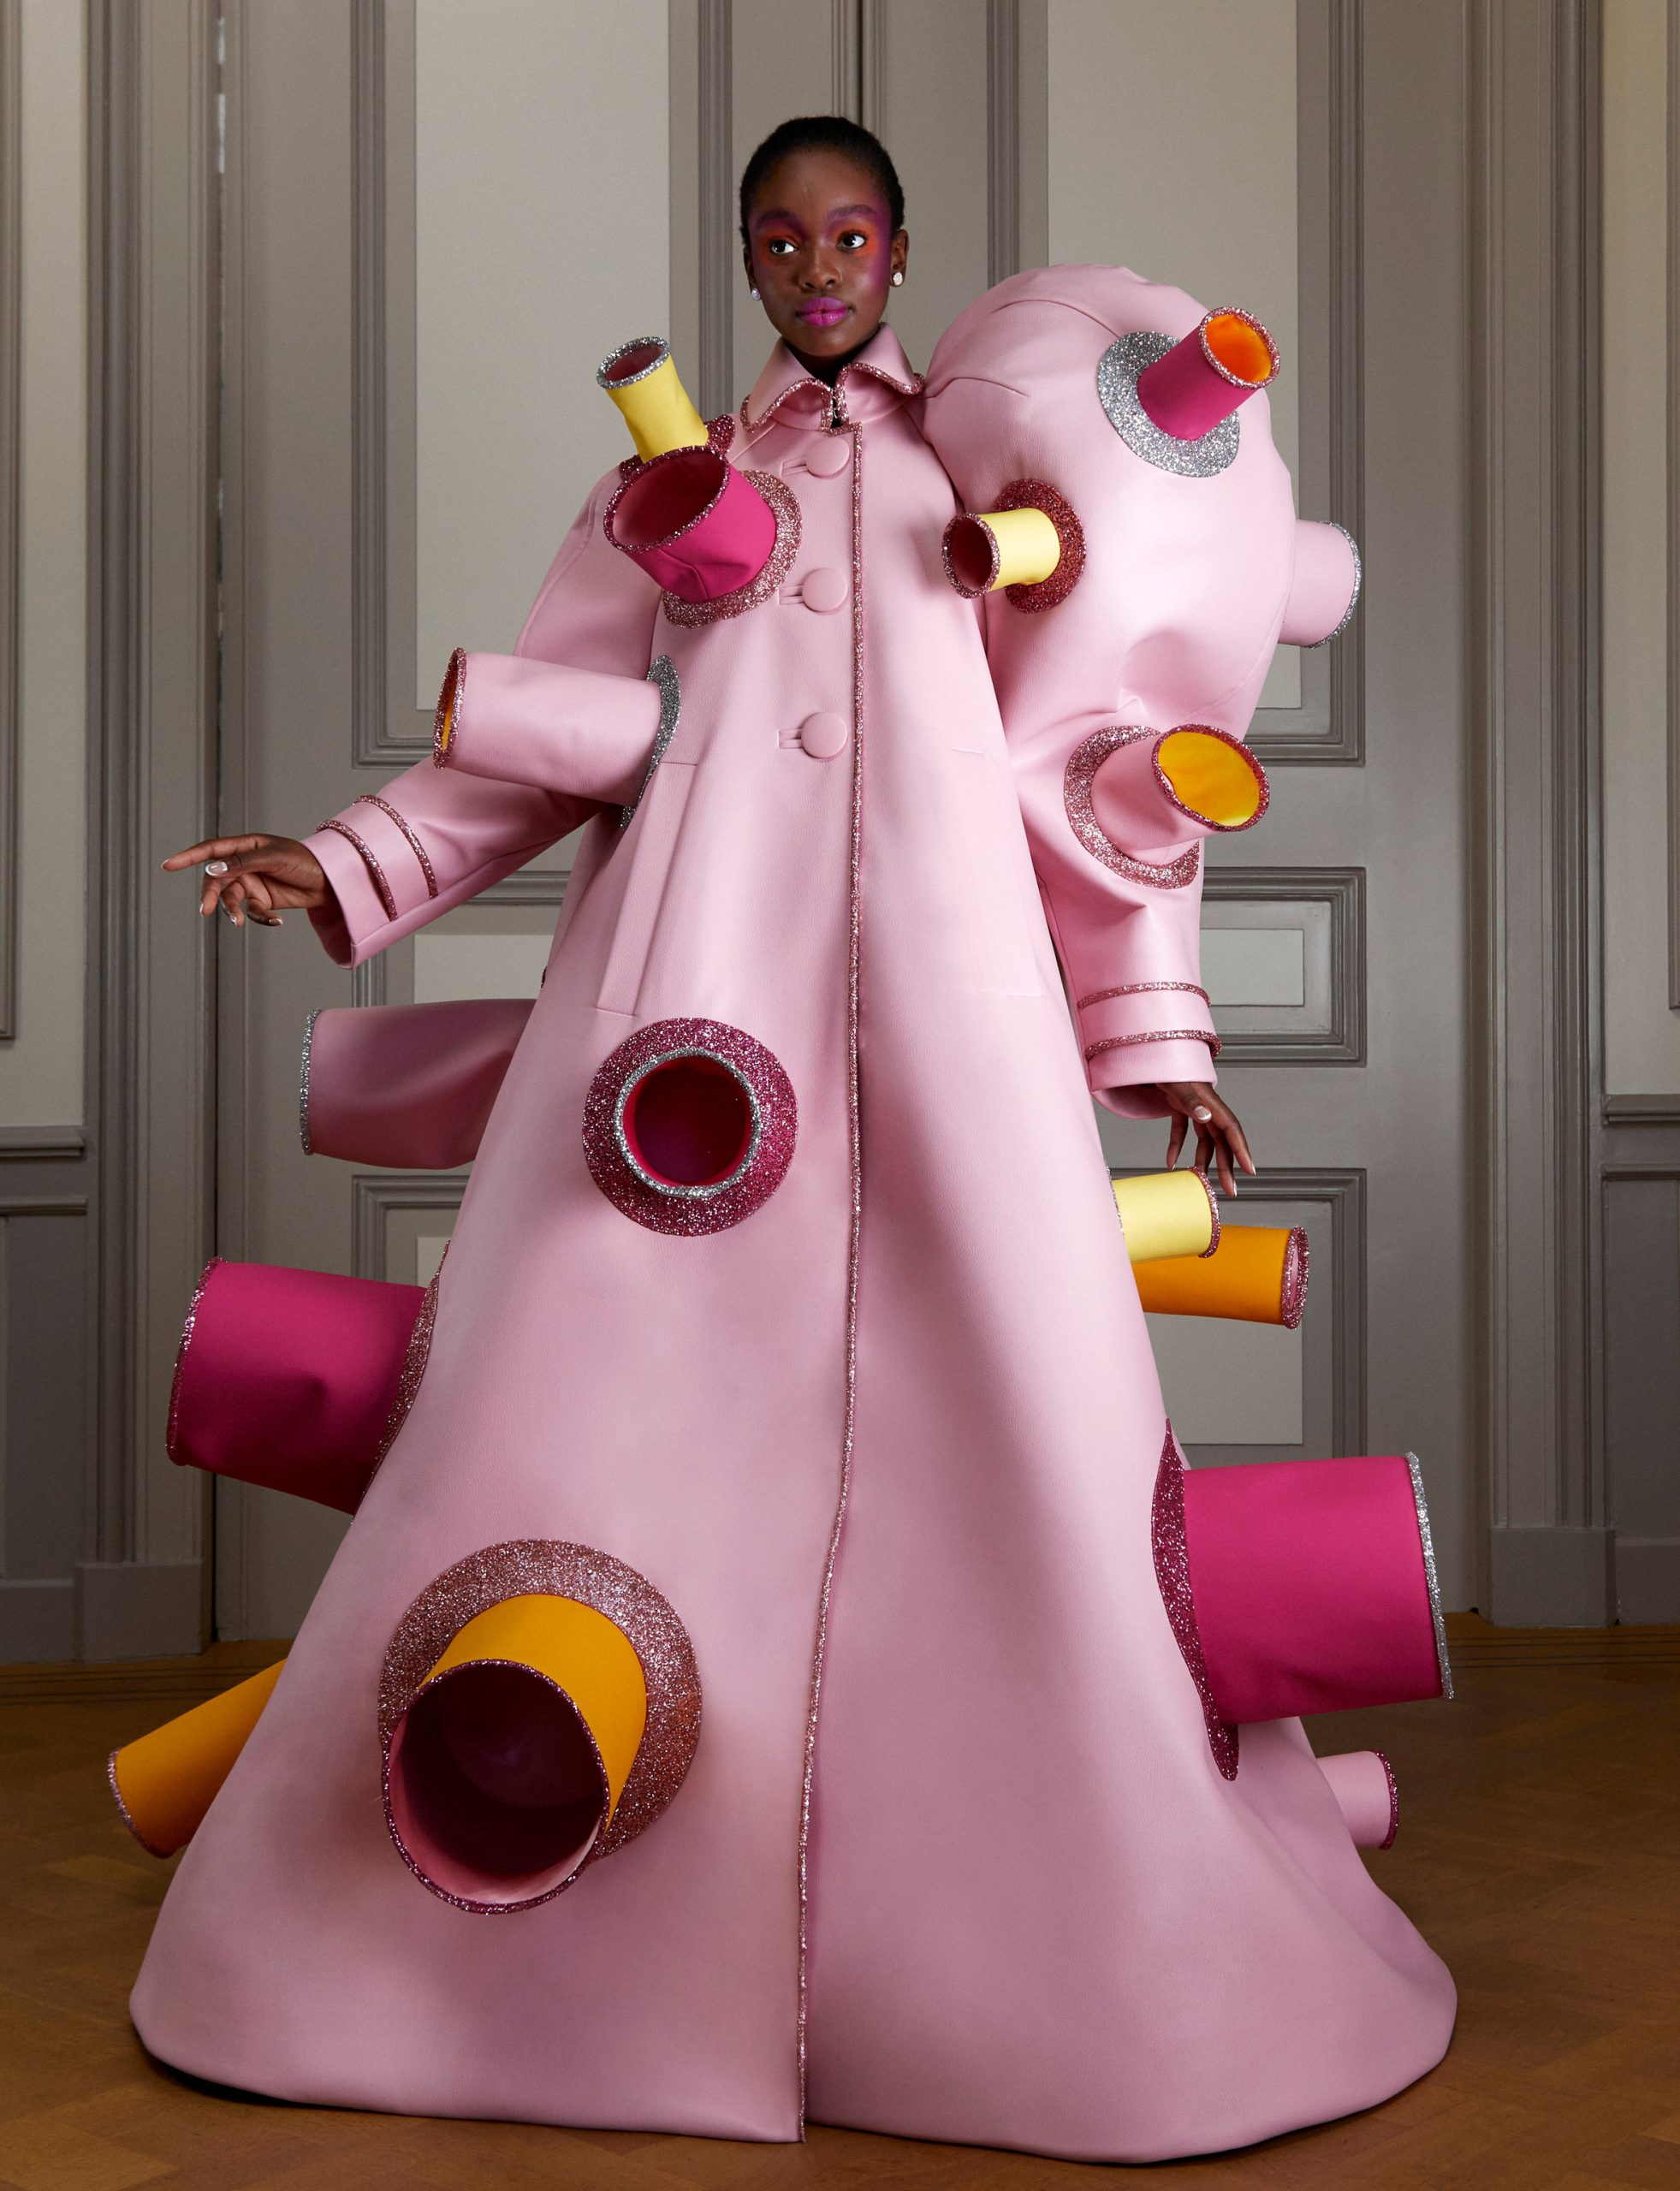 Viktor & Rolf channels Covid-19-related mentalities for latest A/W 2020 fashion collection